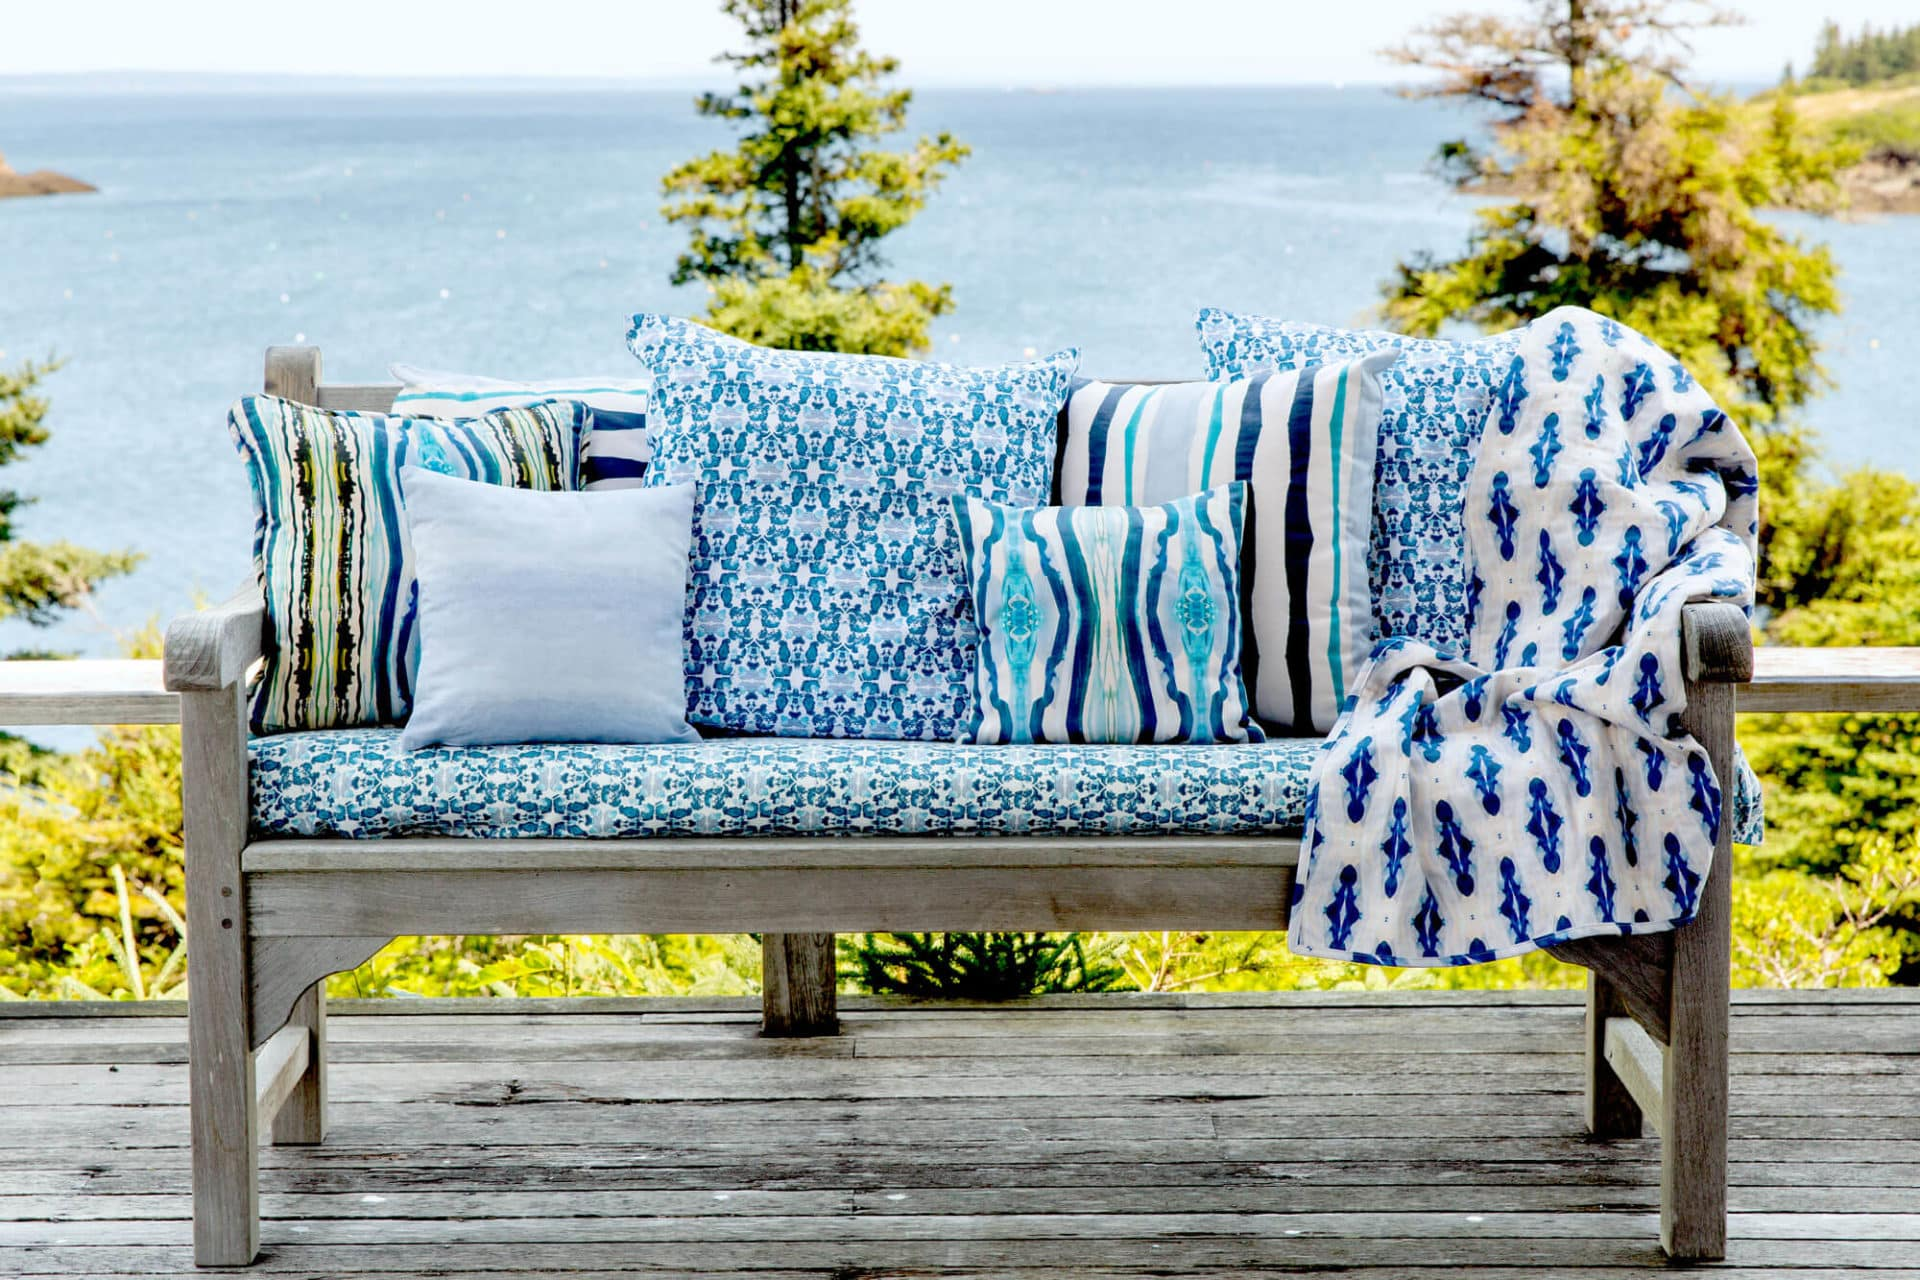 Organic blue pillows and blanket displayed on a rustic bench in front of the ocean